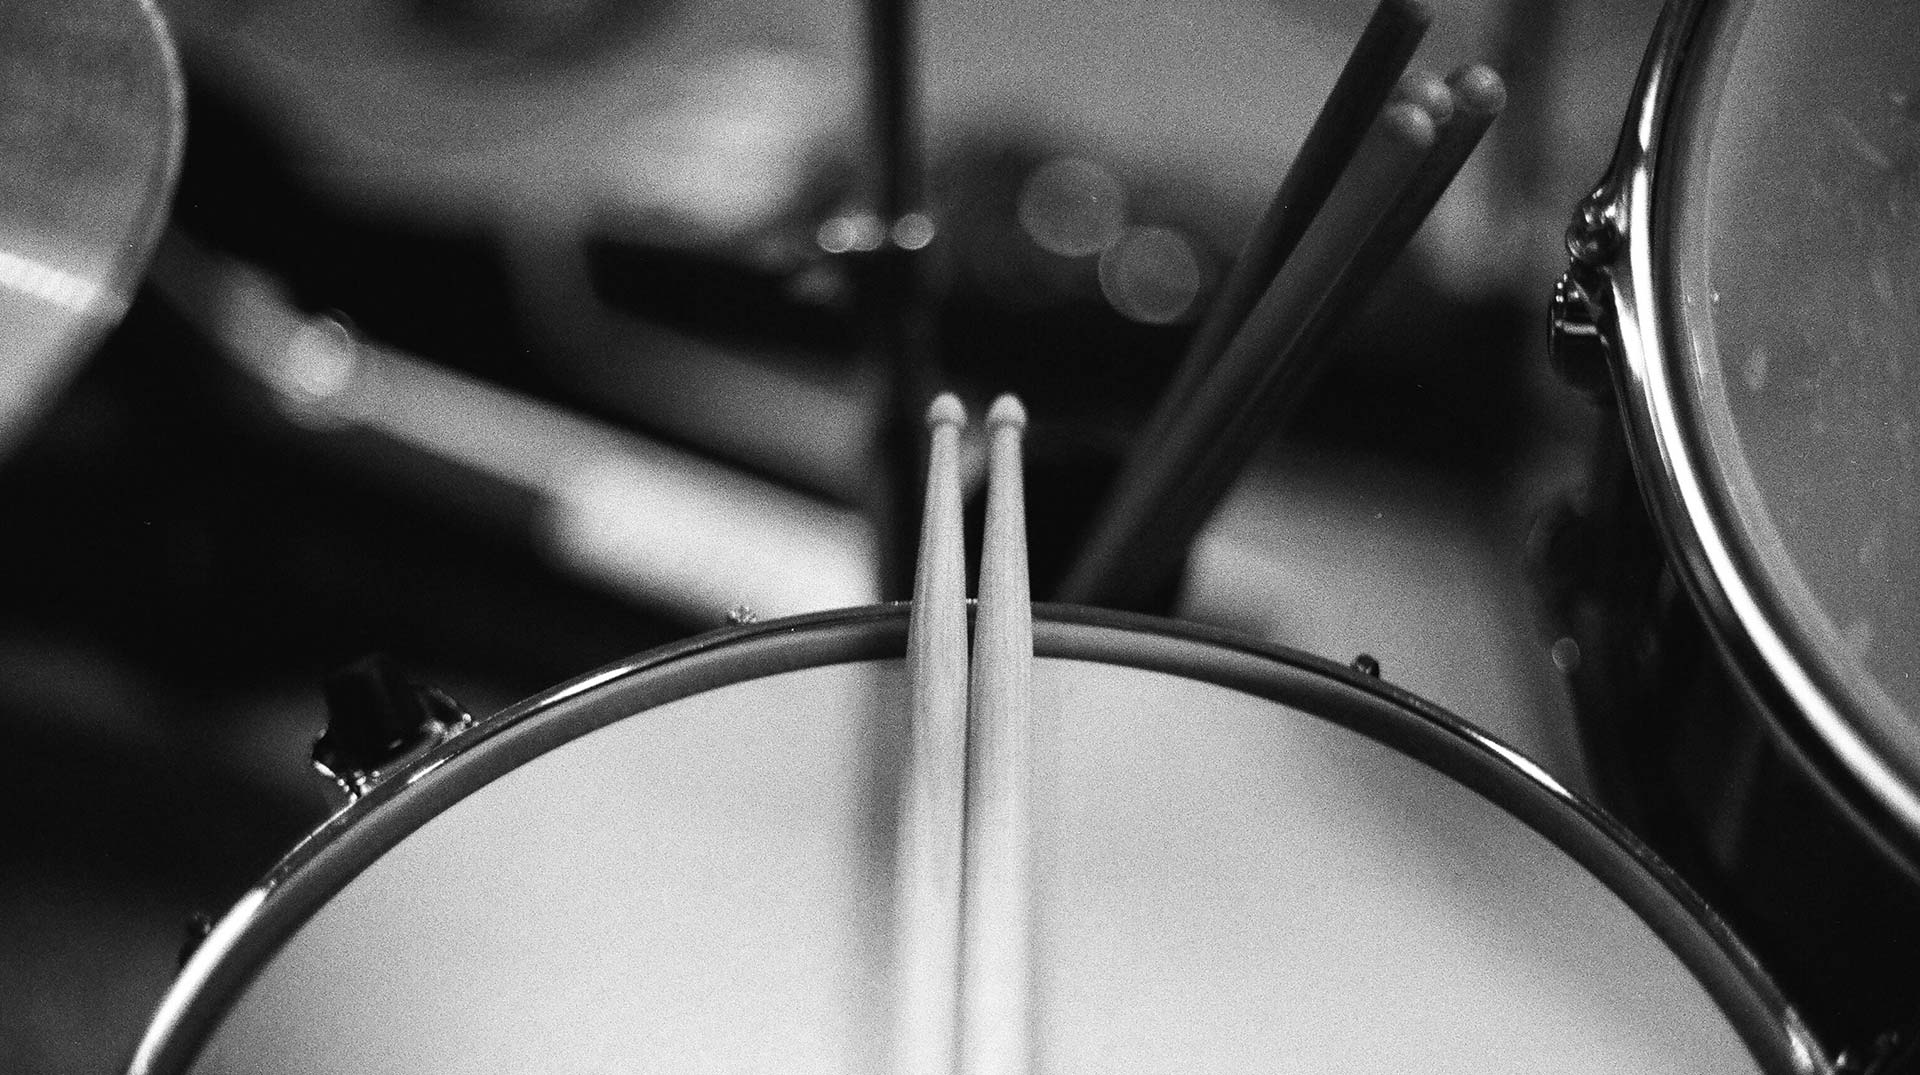 dw drum wallpaper hd